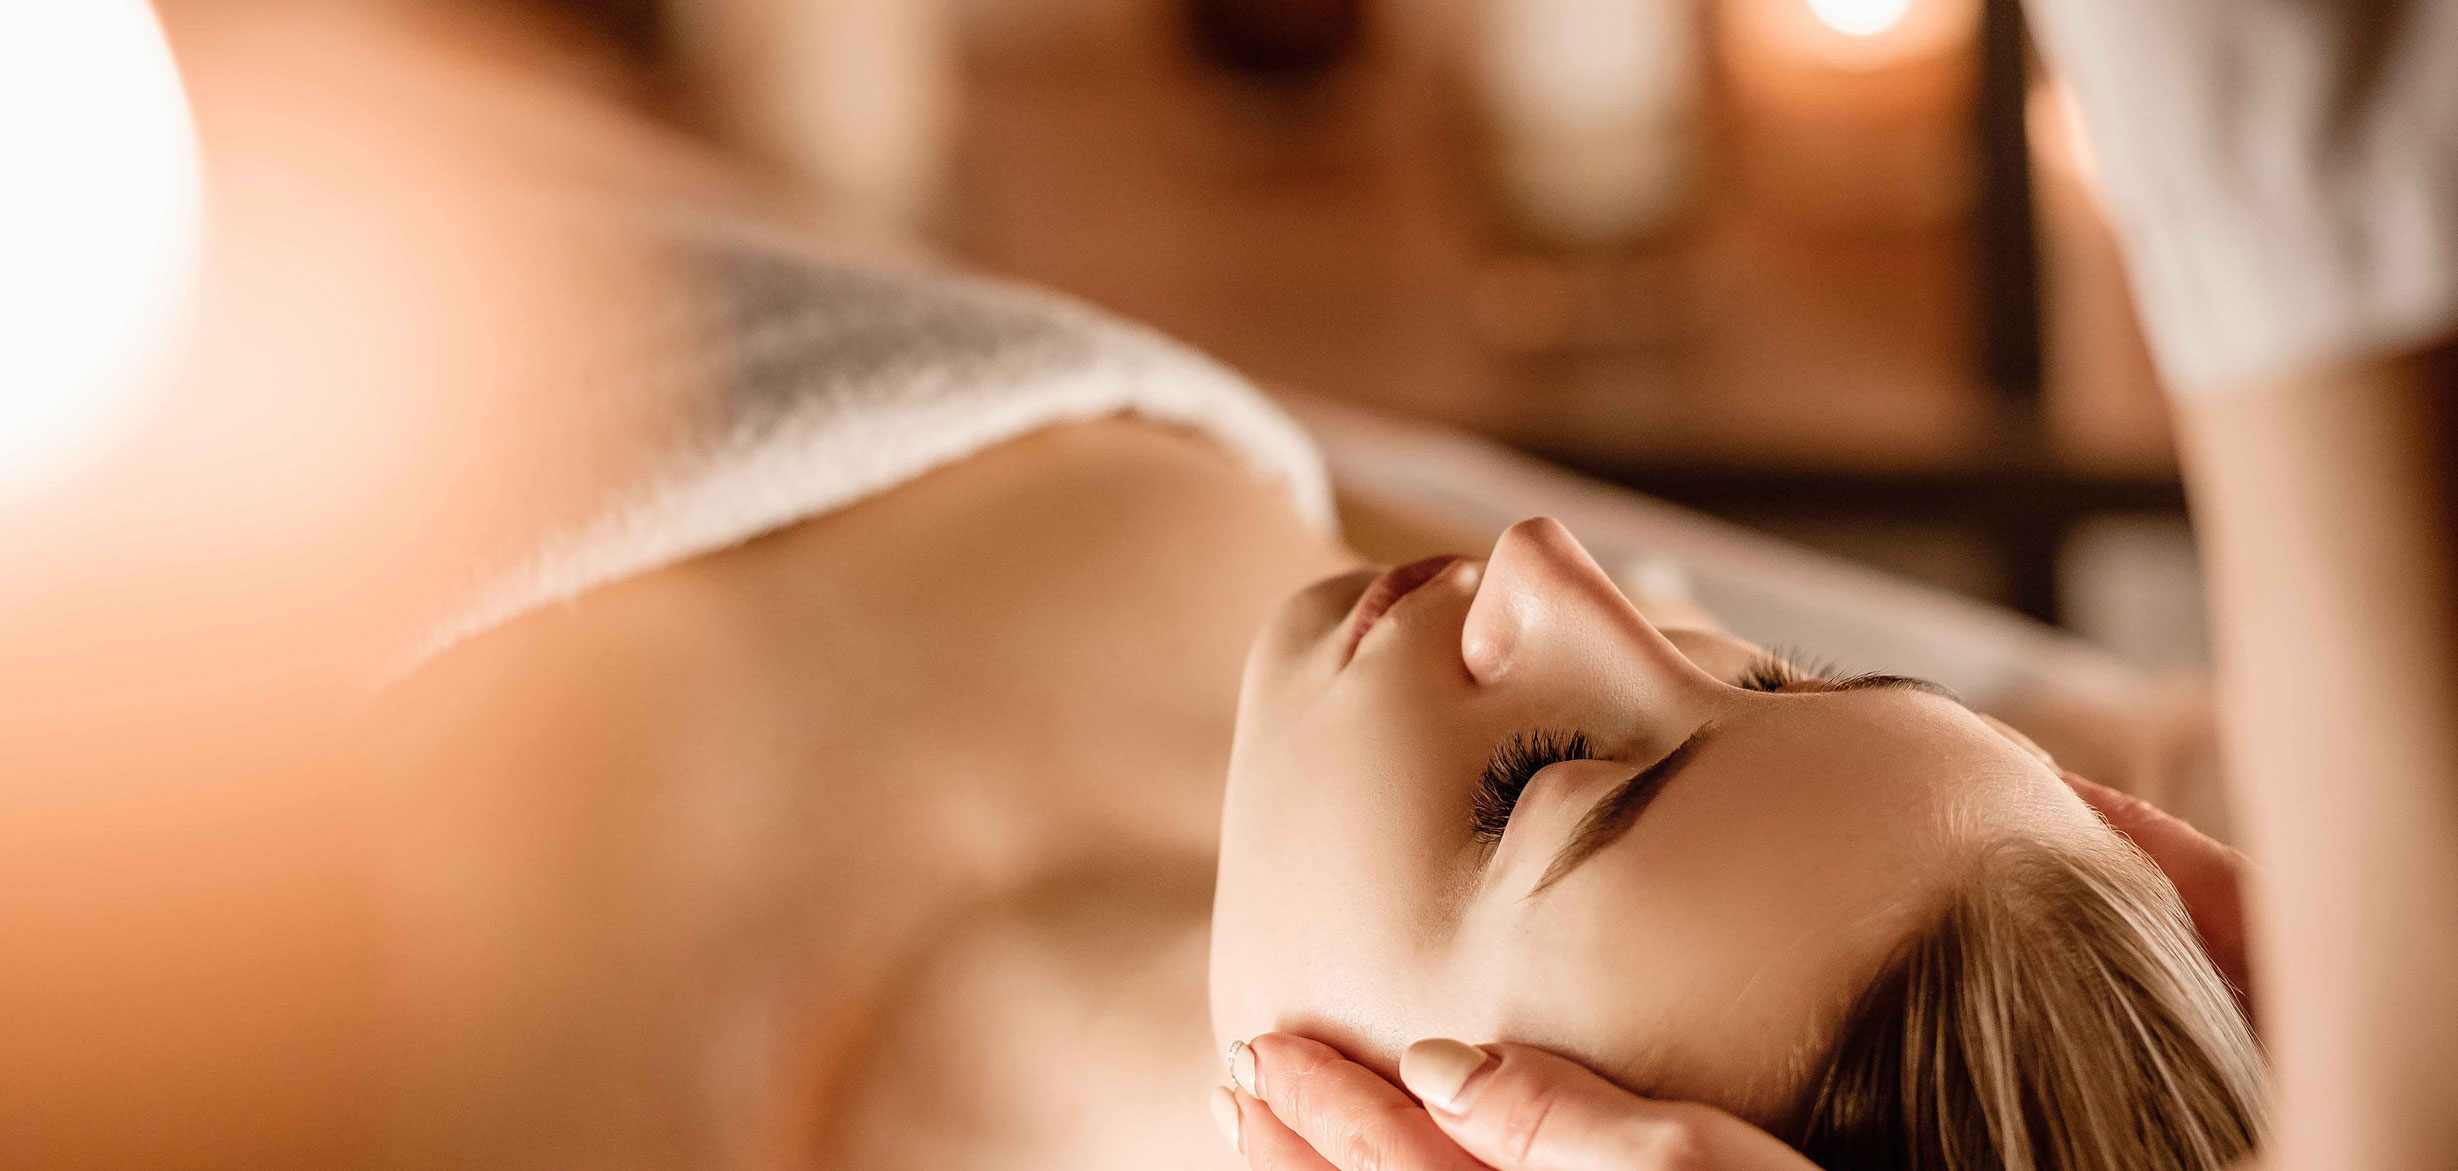 Romancing the Spa. Relaxation and Rejuvenation in Toronto's Favorite Spa. For this and other specials, check our Offers page